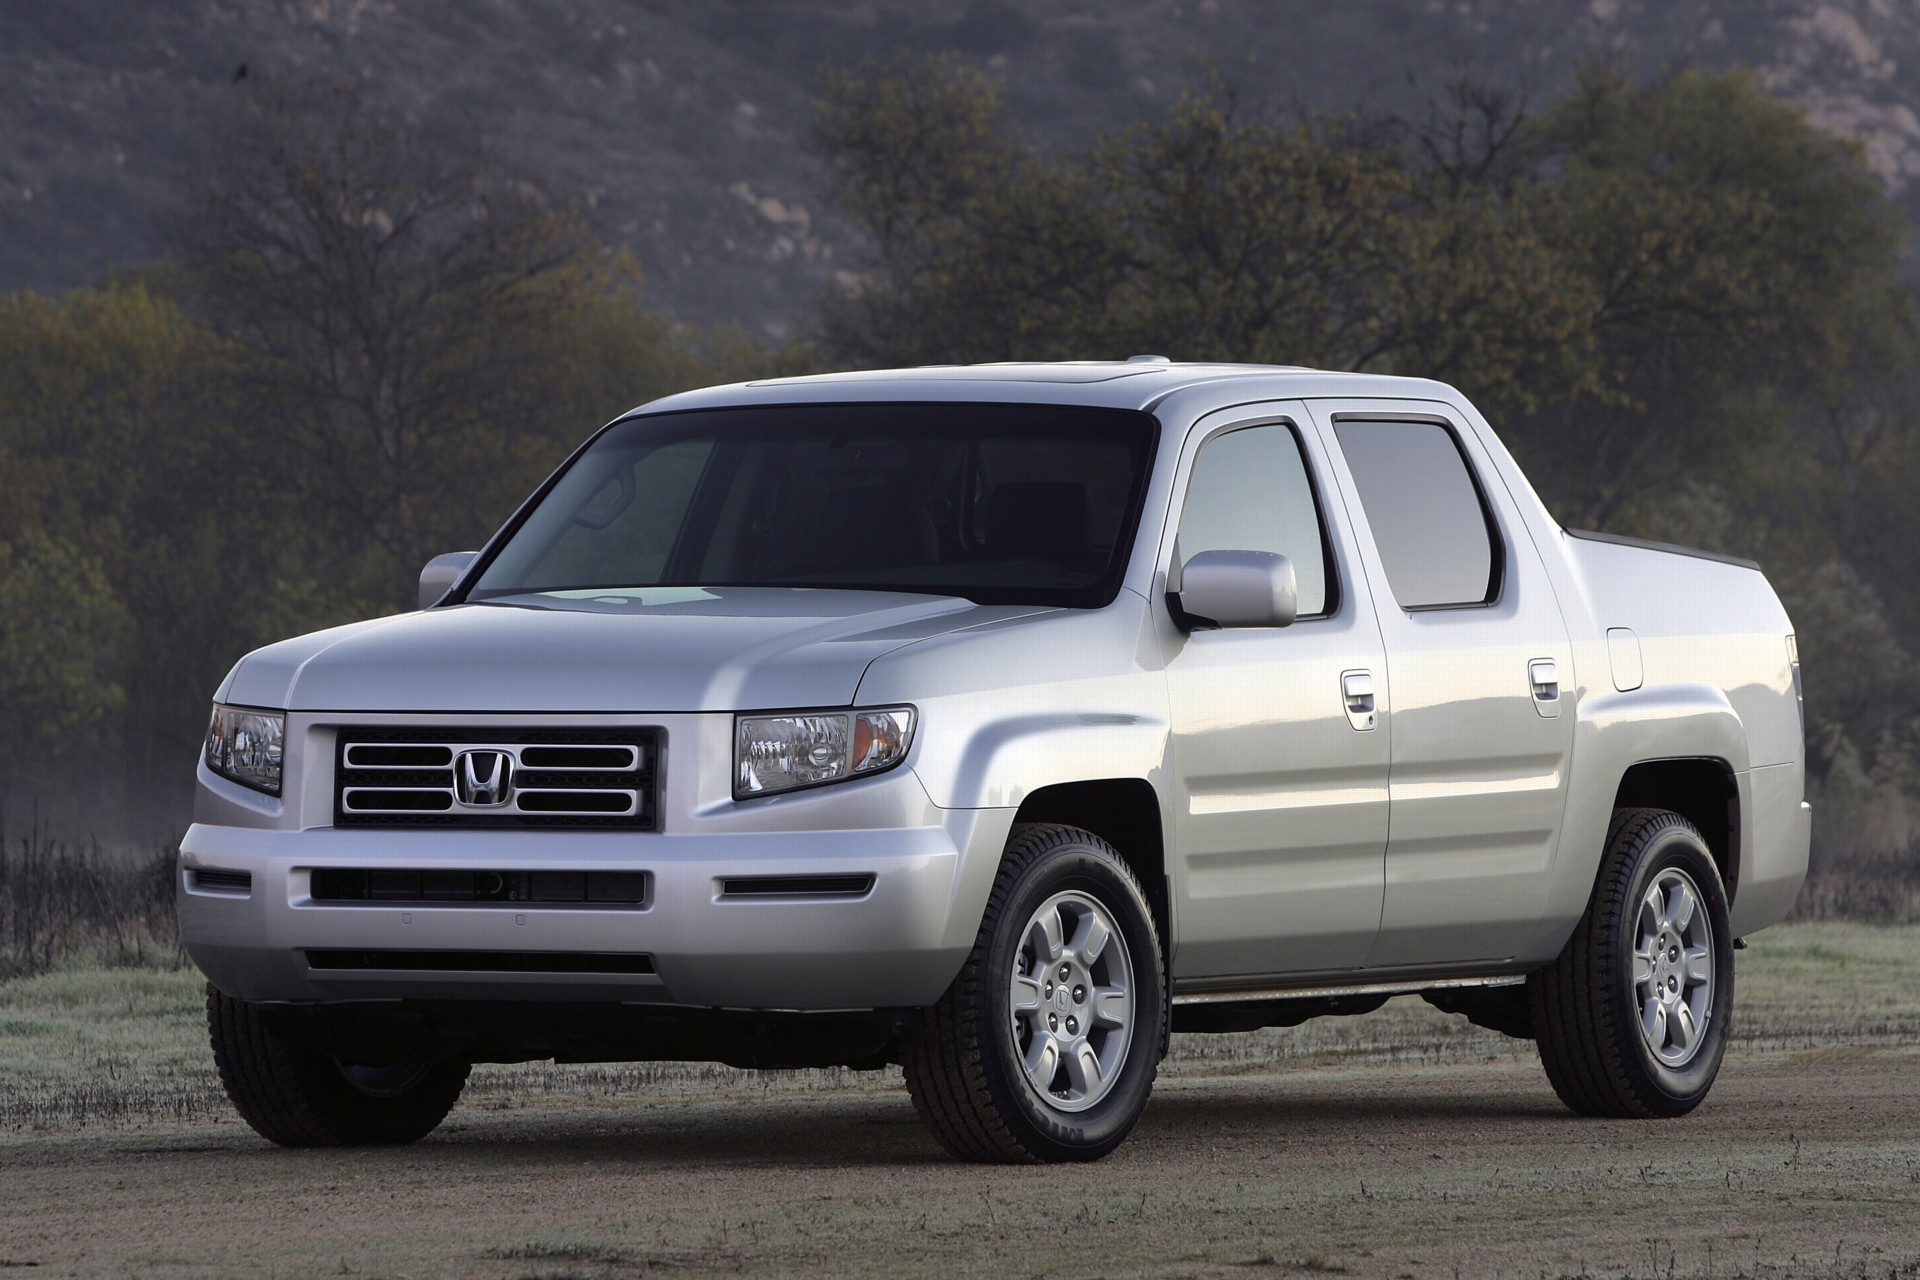 2007 honda ridgeline pictures history value research news. Black Bedroom Furniture Sets. Home Design Ideas